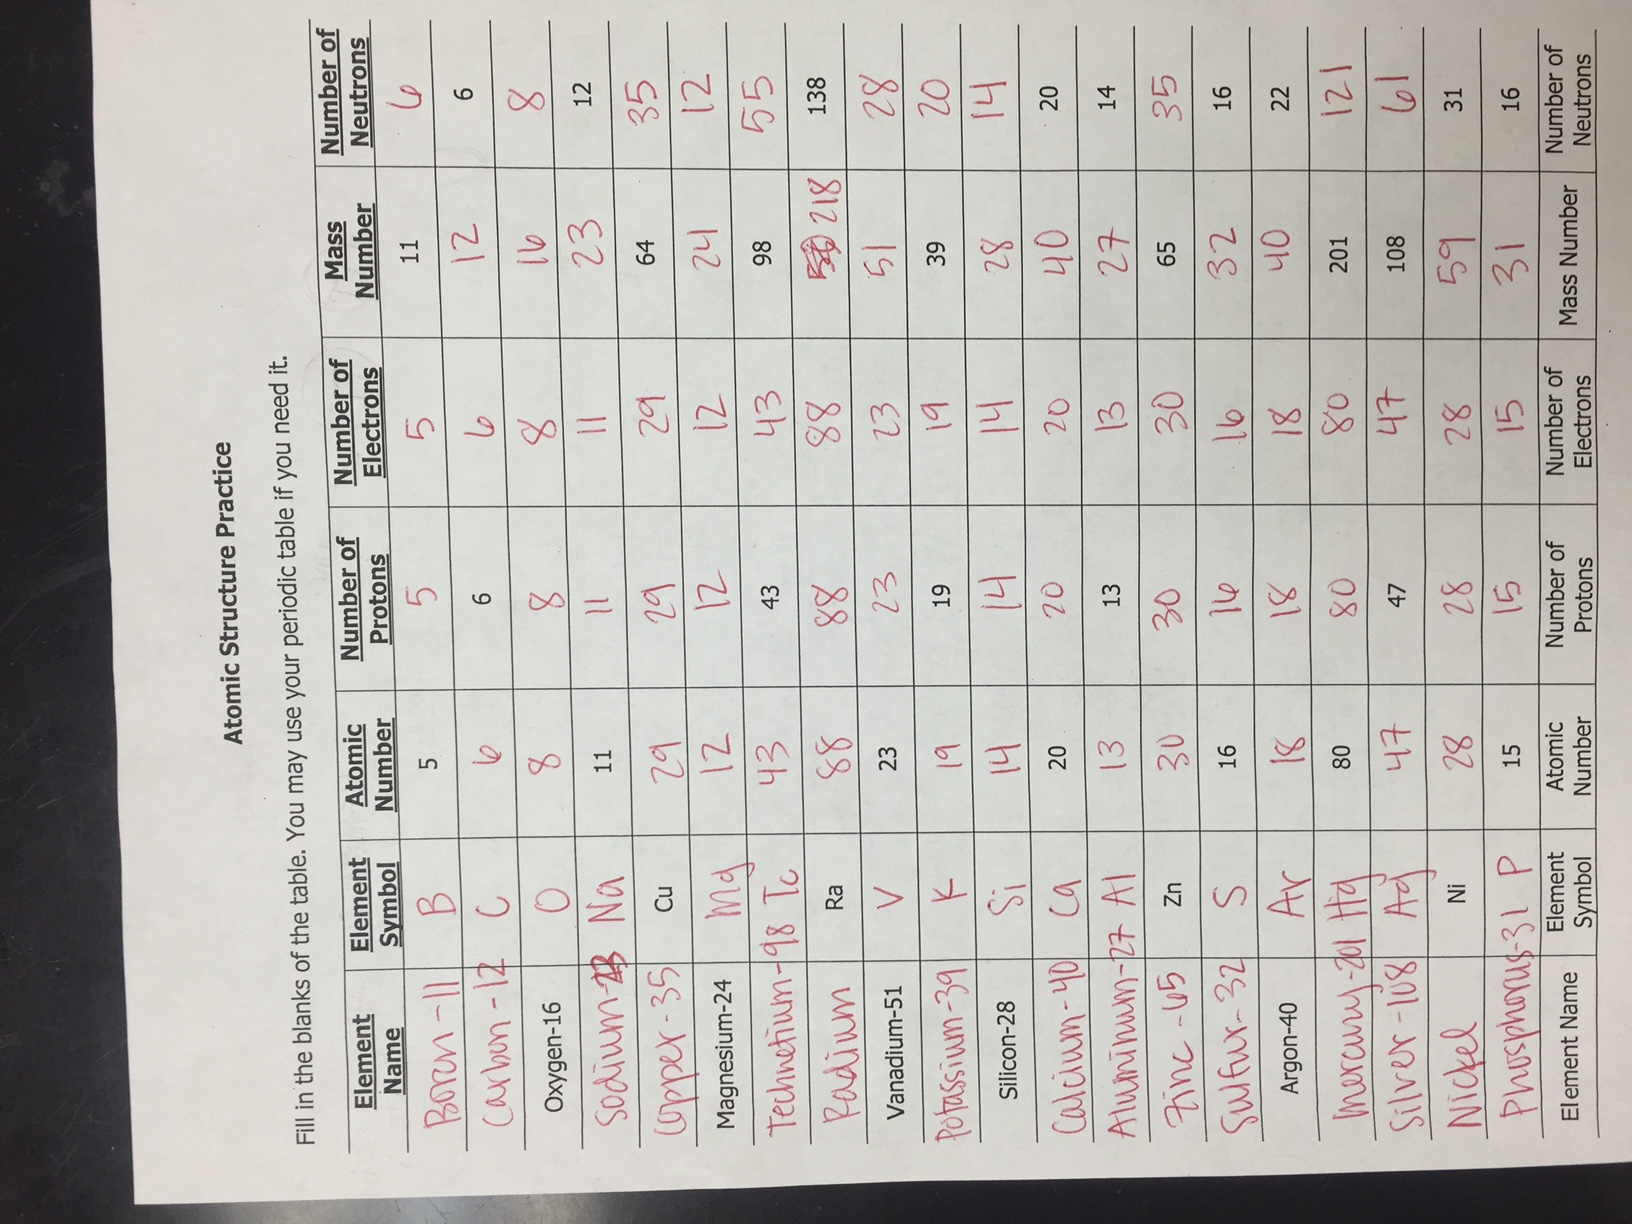 Collection Of Atomic Structure Ions Worksheet Answers